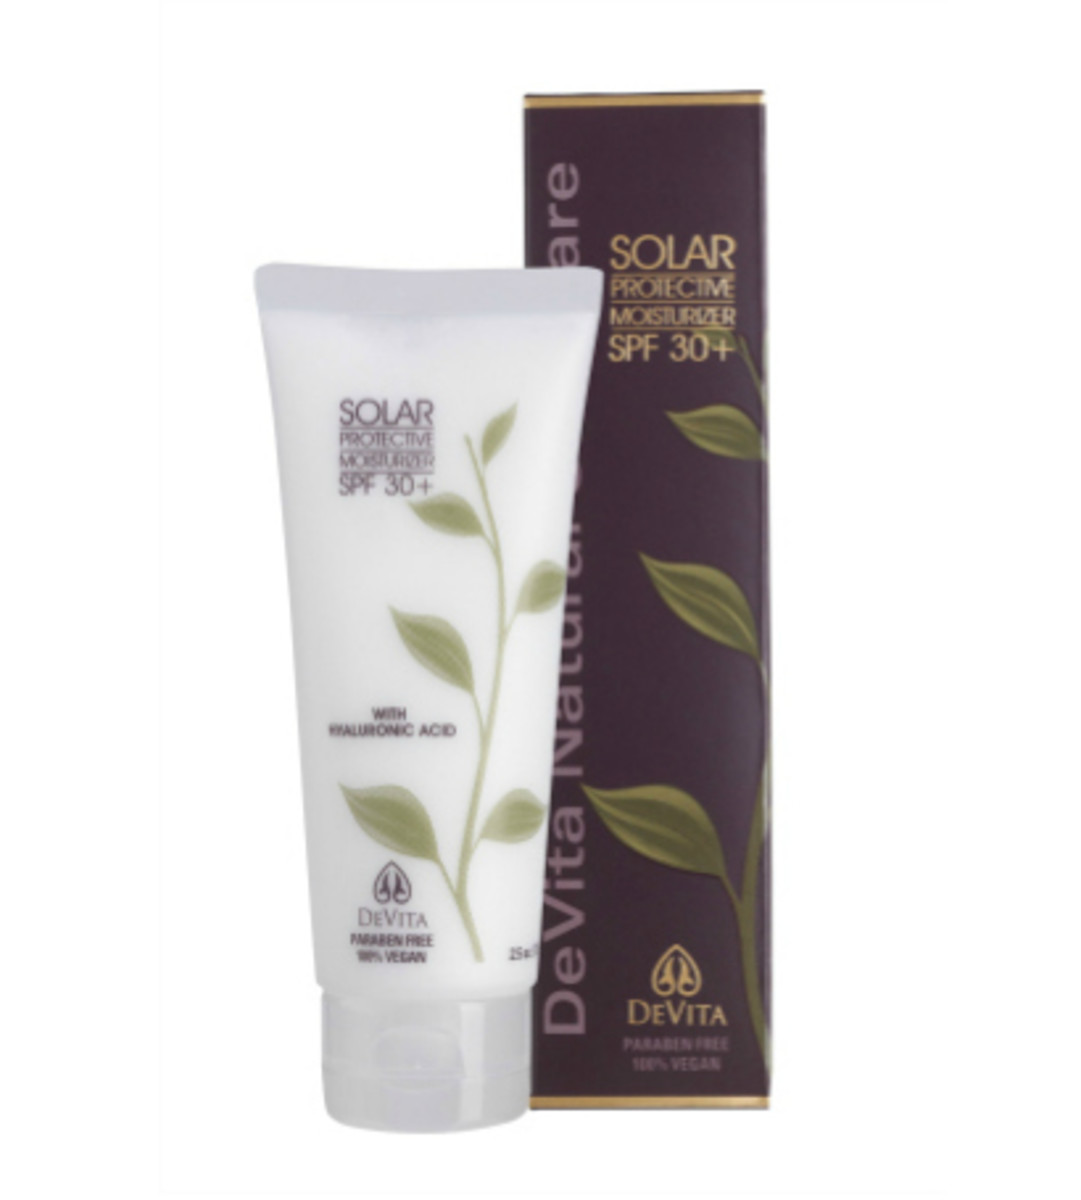 Natural Sunscreen DeVita Solar Moisturizer